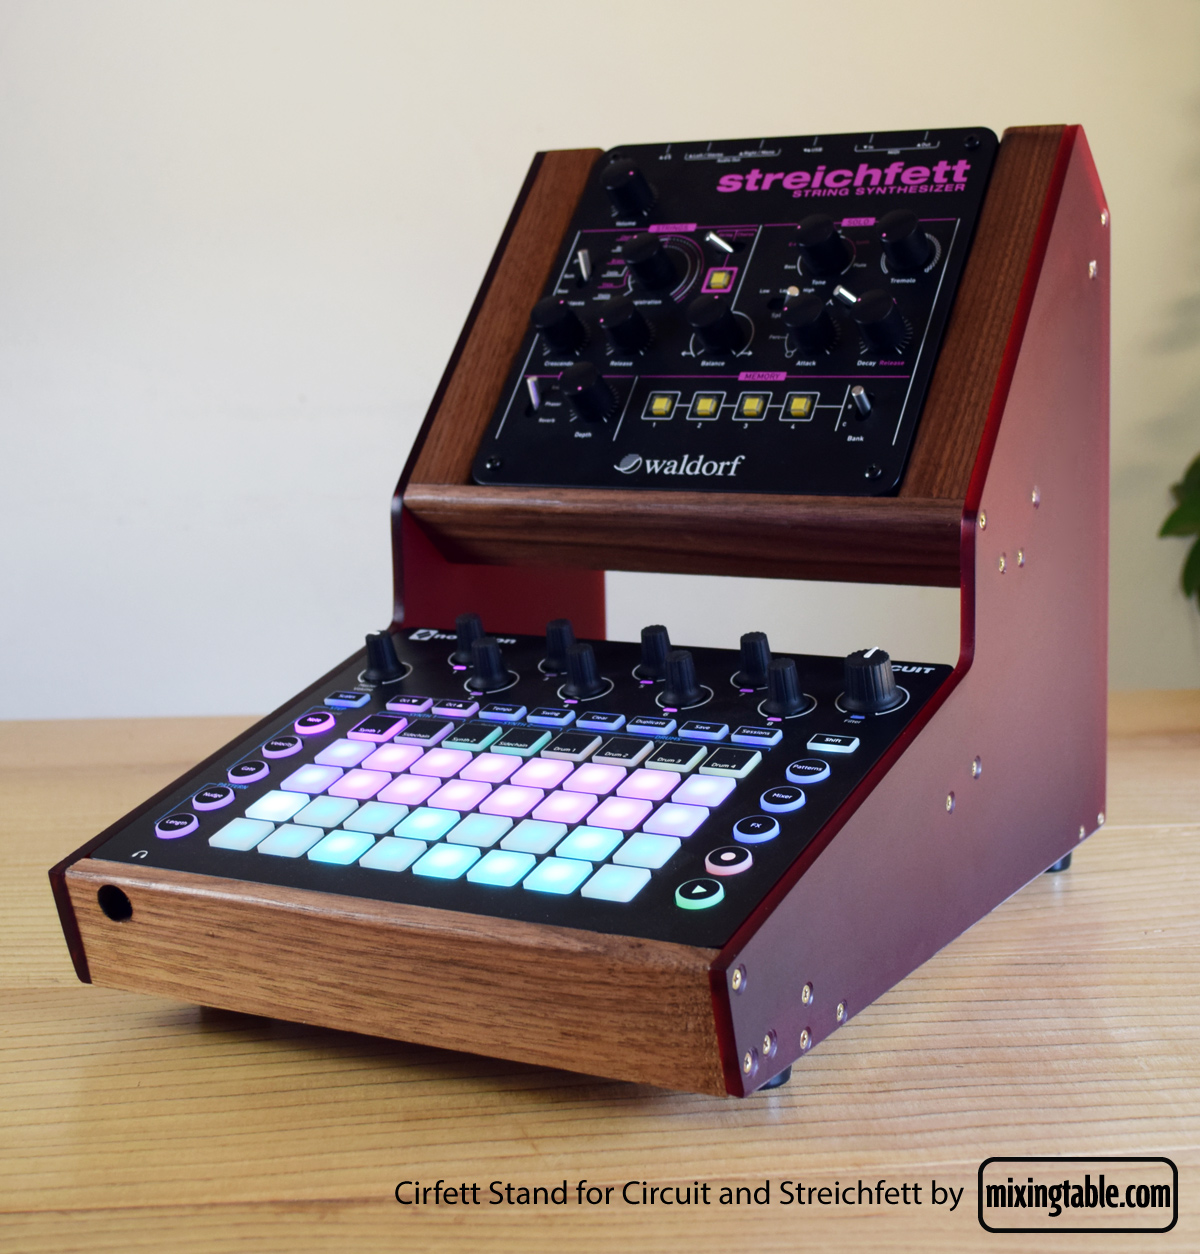 cirfett-stand-by-mixingtable-2